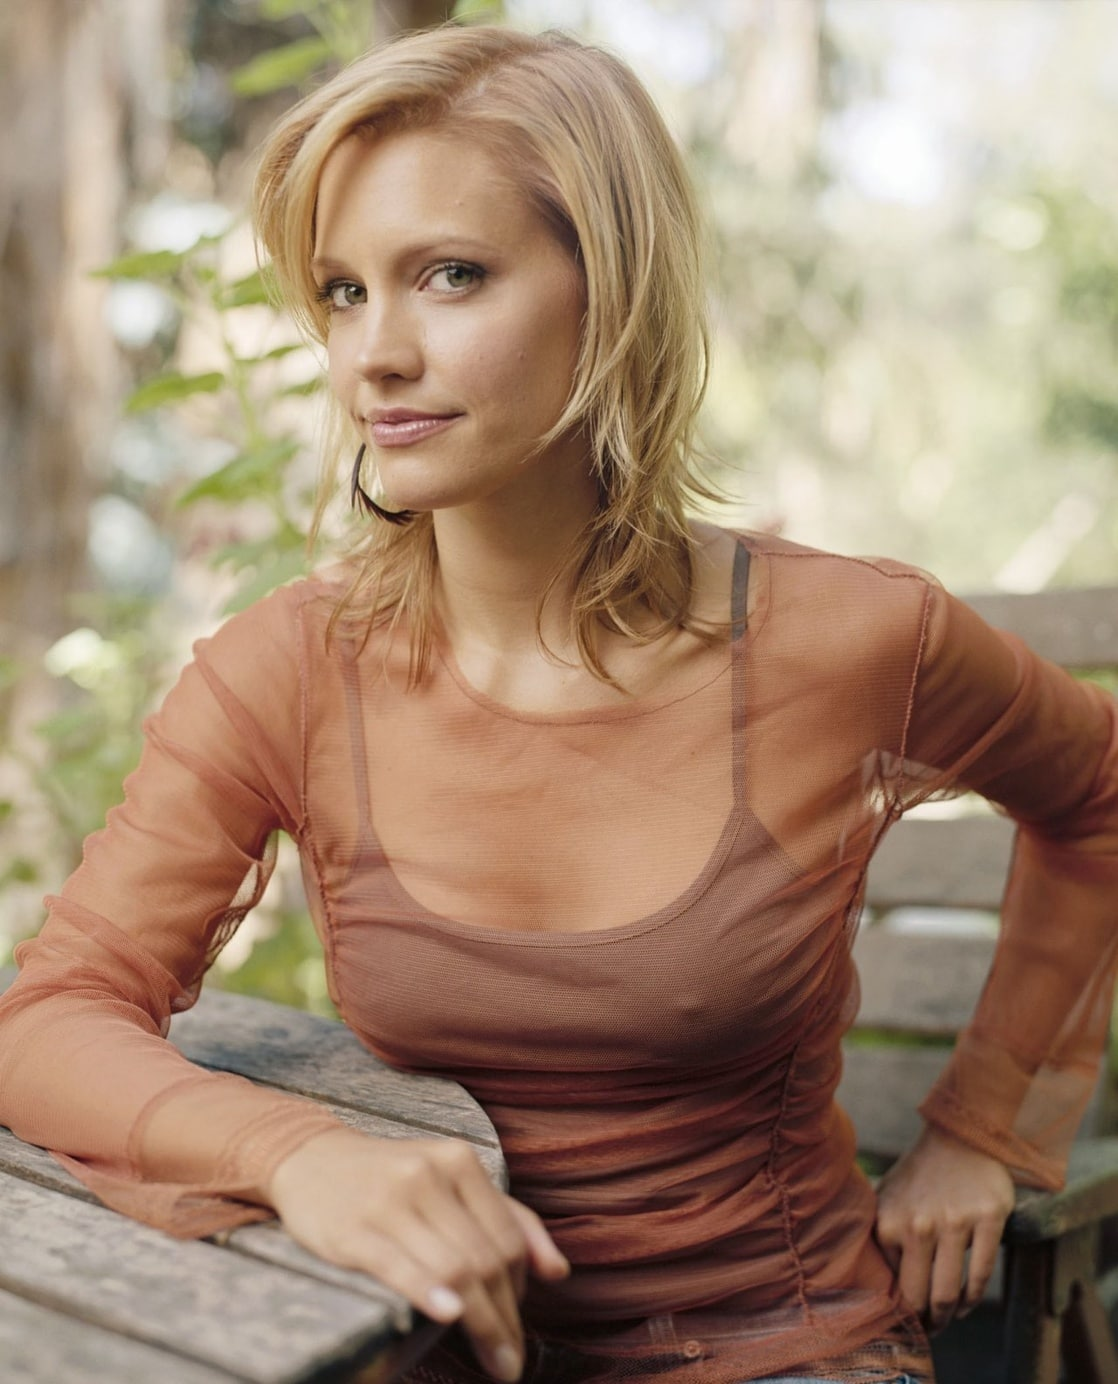 KaDee Strickland naked (76 photo), Sexy, Leaked, Boobs, braless 2006